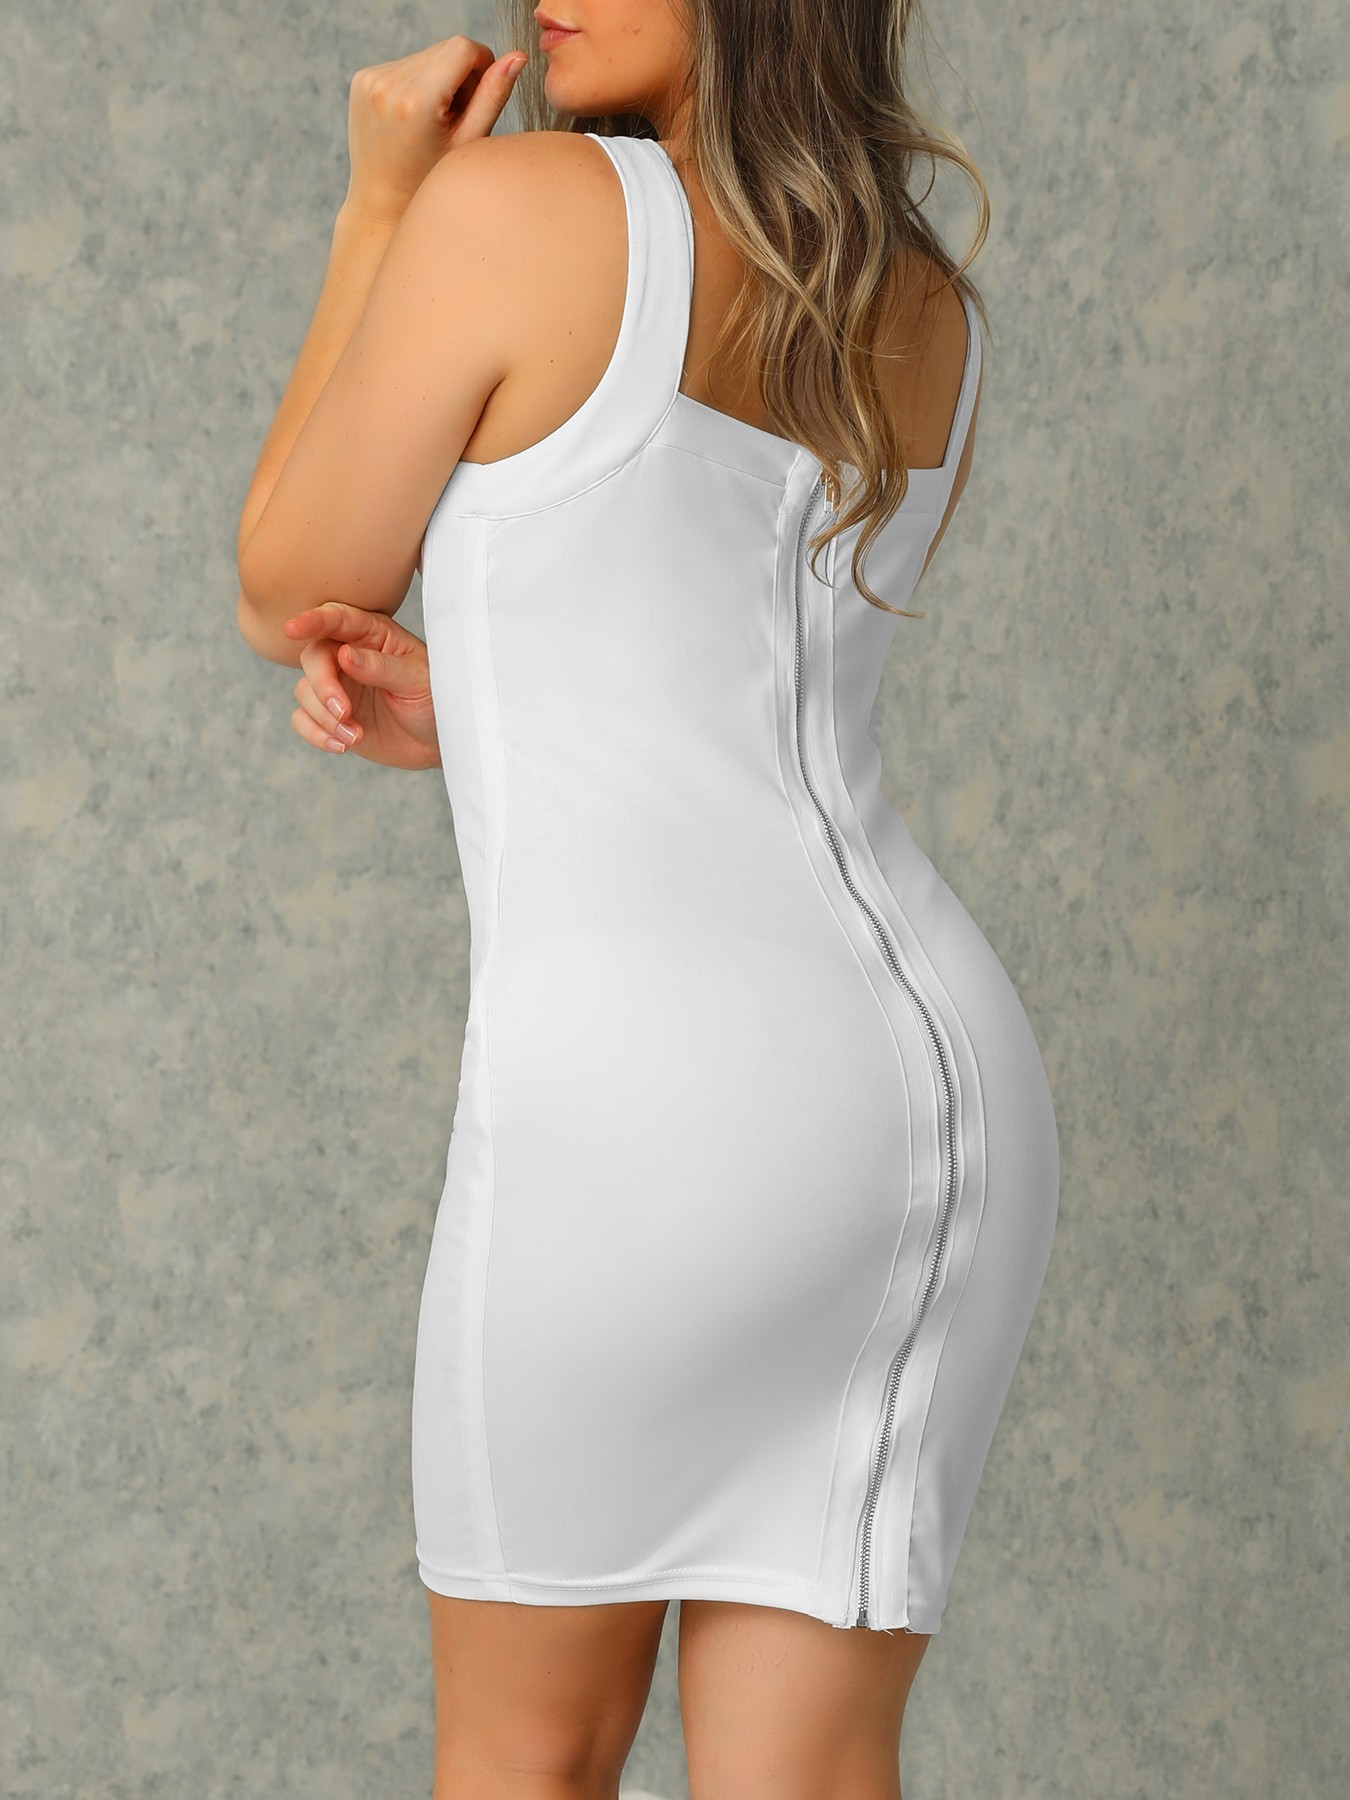 boutiquefeel / White Plunge Elastic Bodycon Dress